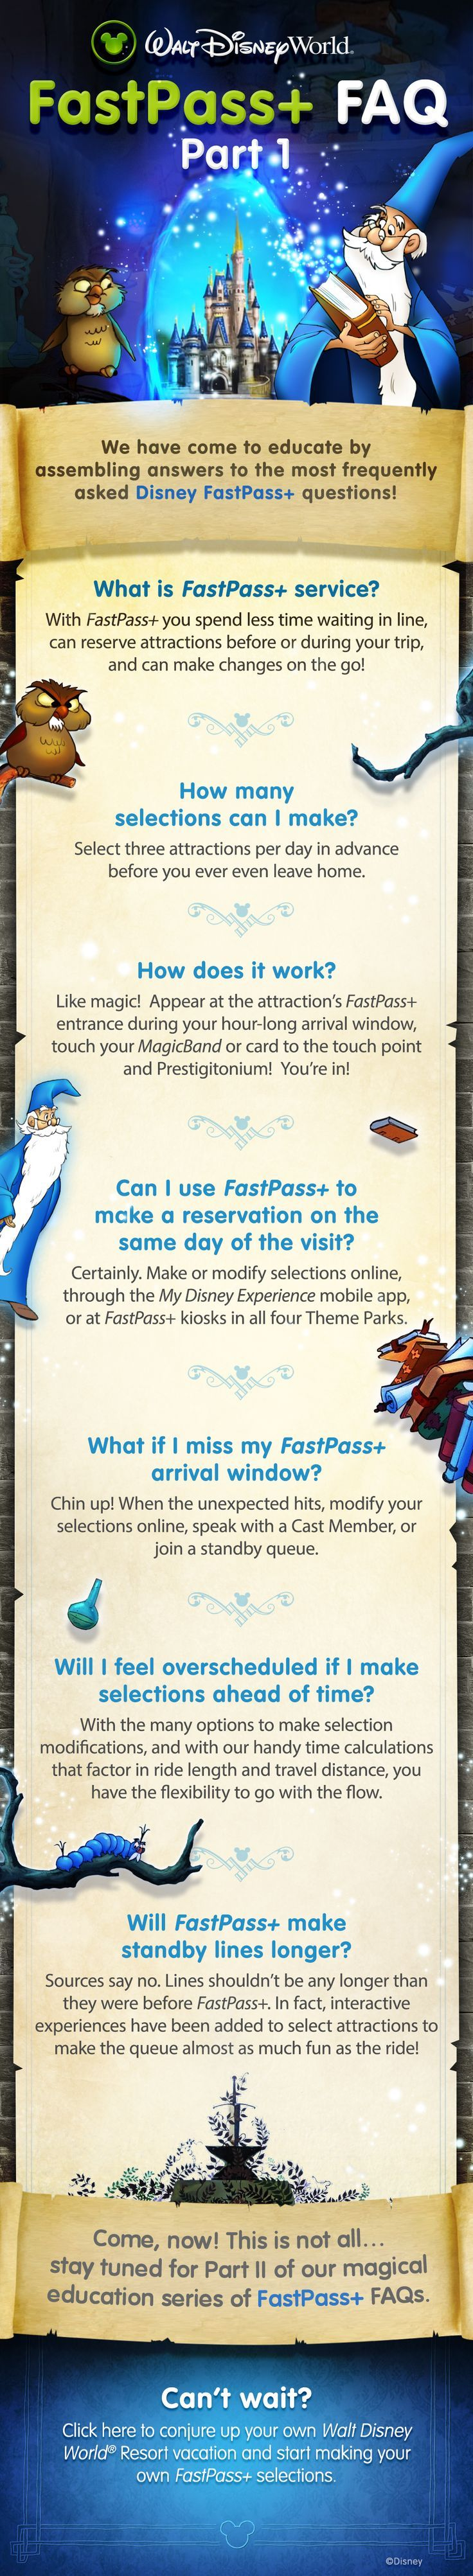 Learn the basics of FastPass+ with these FAQs from Walt Disney World! | Note: the link goes to Disney's official page about FastPass+, My Disney Experience, and MagicBands